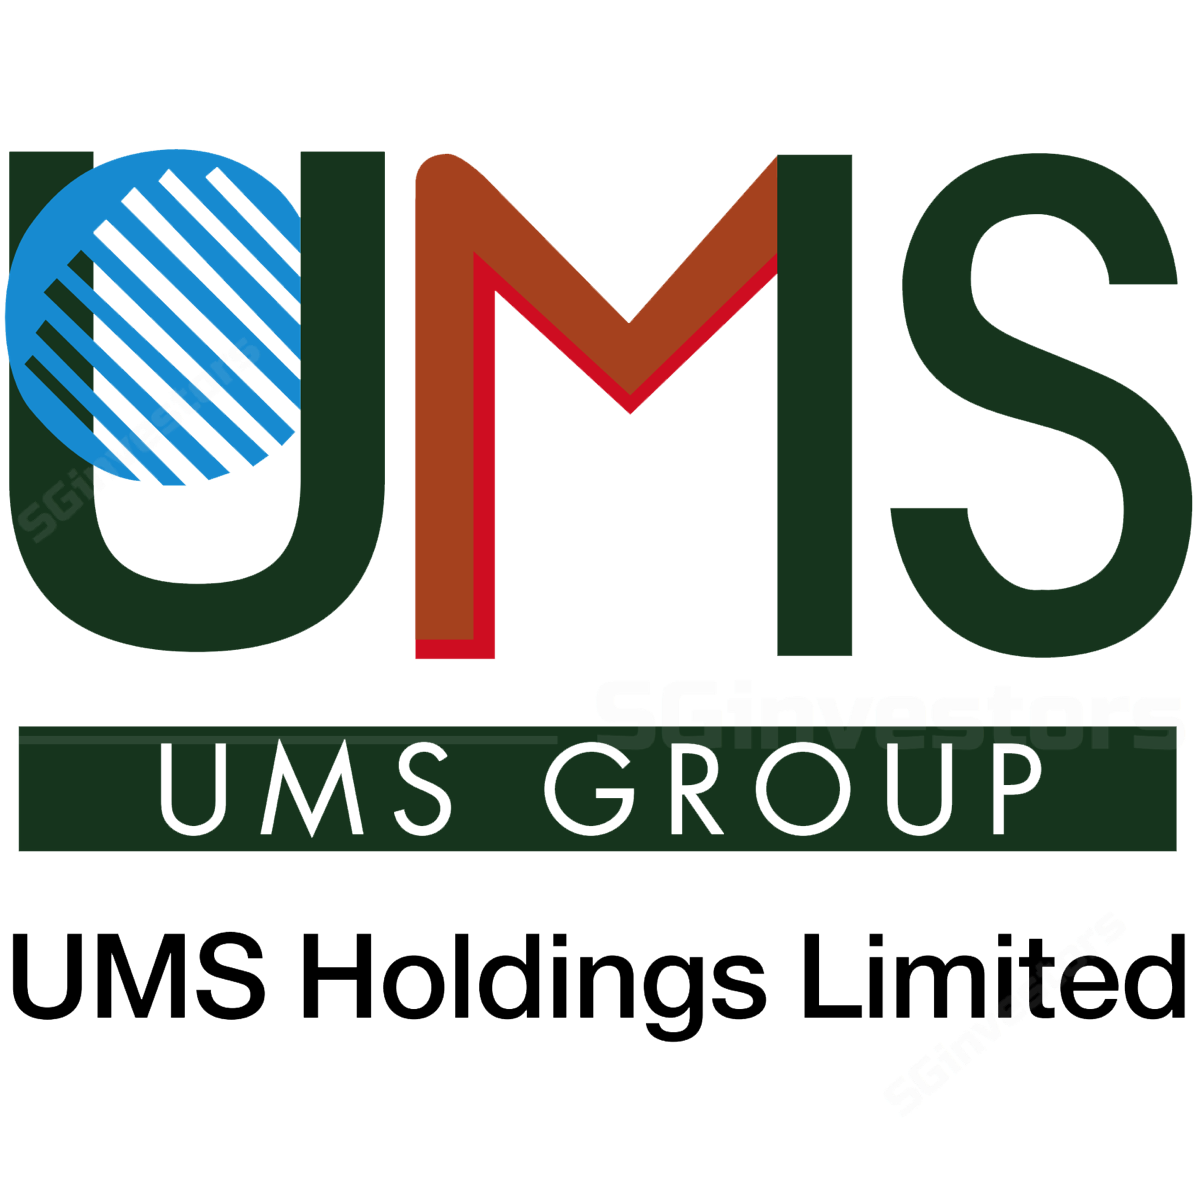 UMS Holdings Ltd - CGS-CIMB 2018-05-14: Never Hurts To Be Cautious